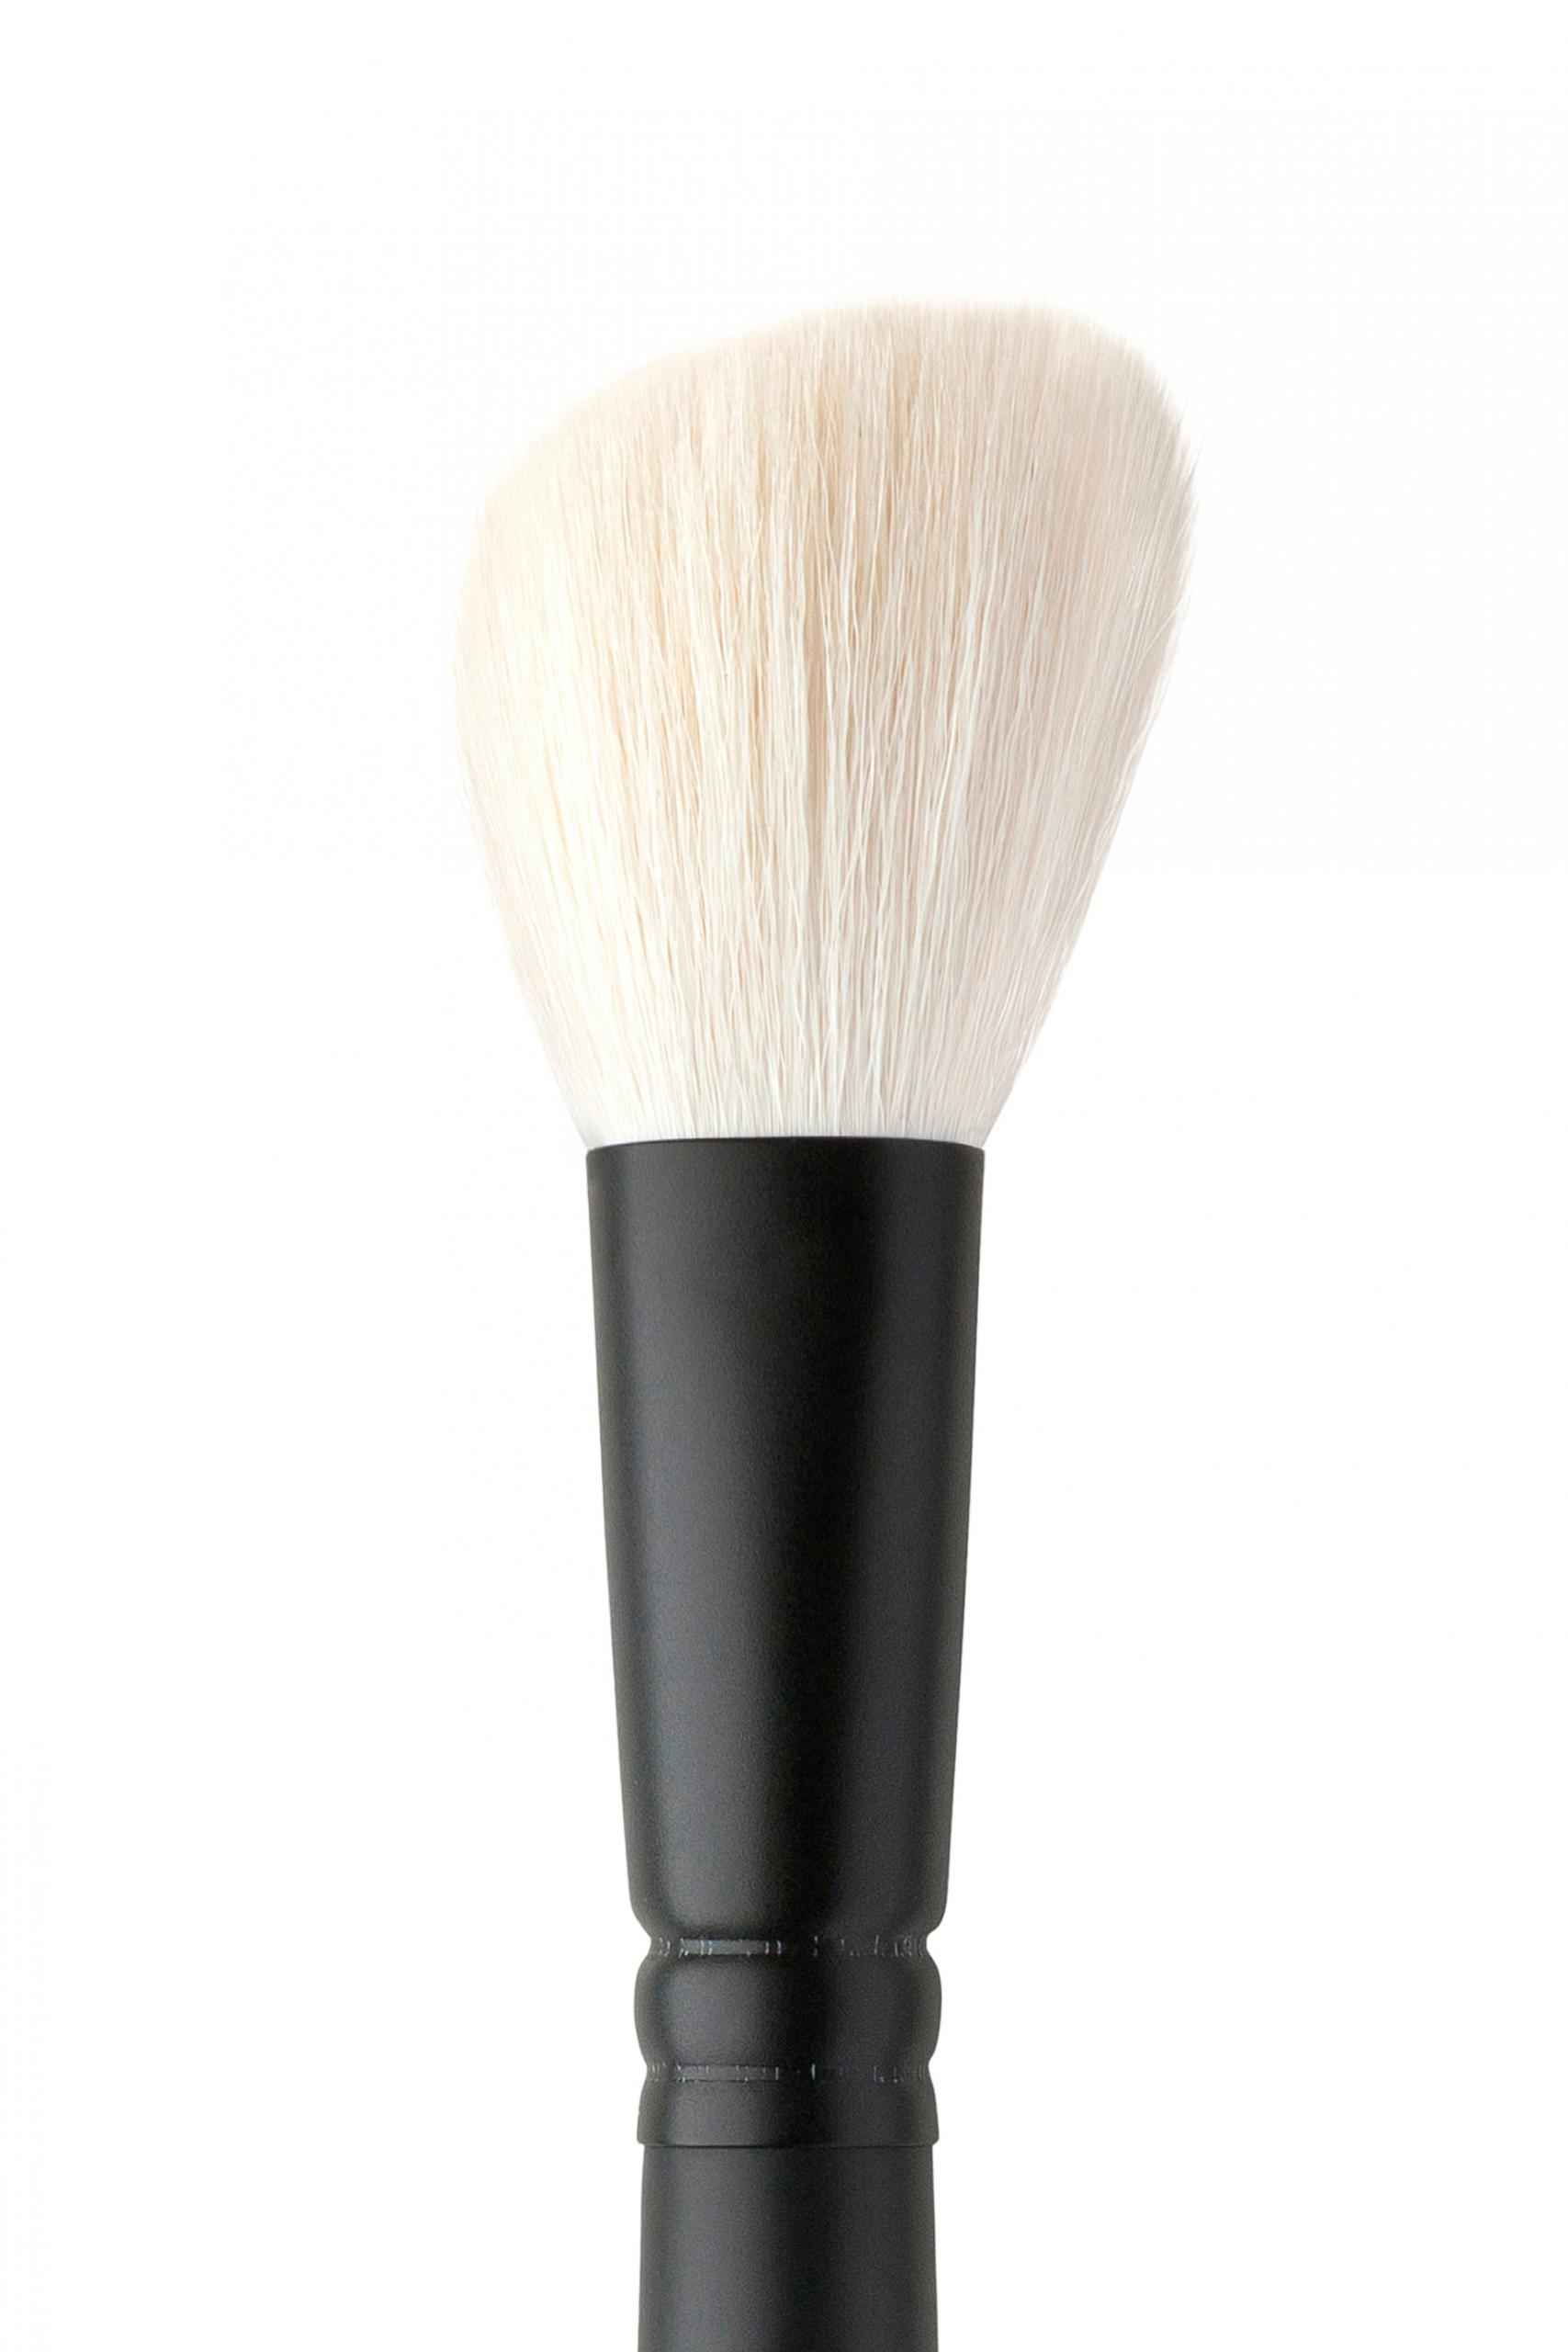 Hair sculpting brush Annbeauty S22